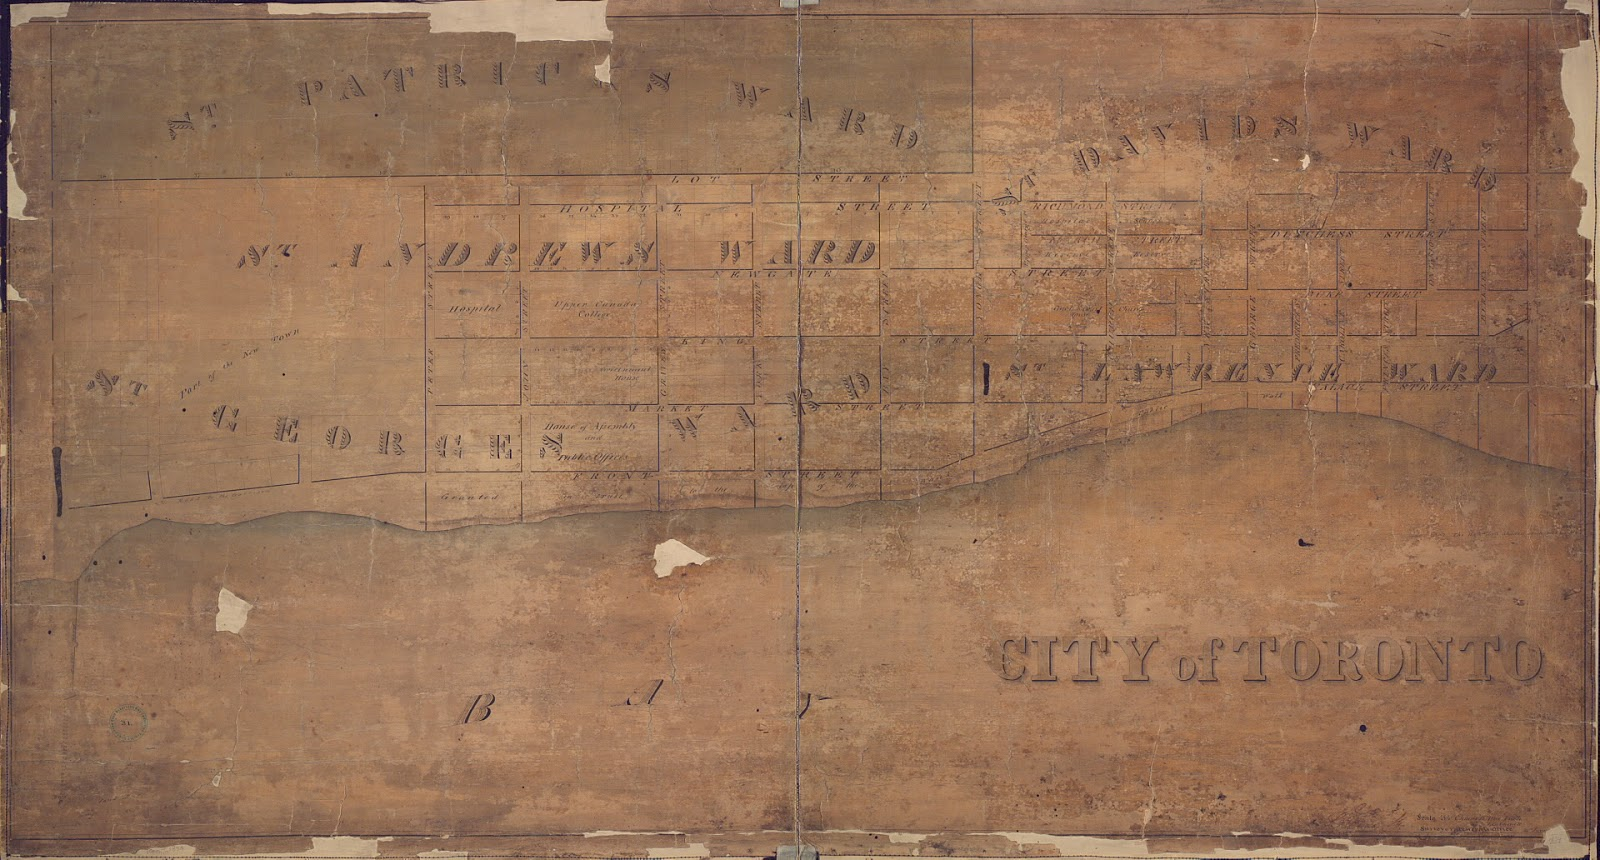 Map: 1834 City of Toronto, by James Grant Chewett